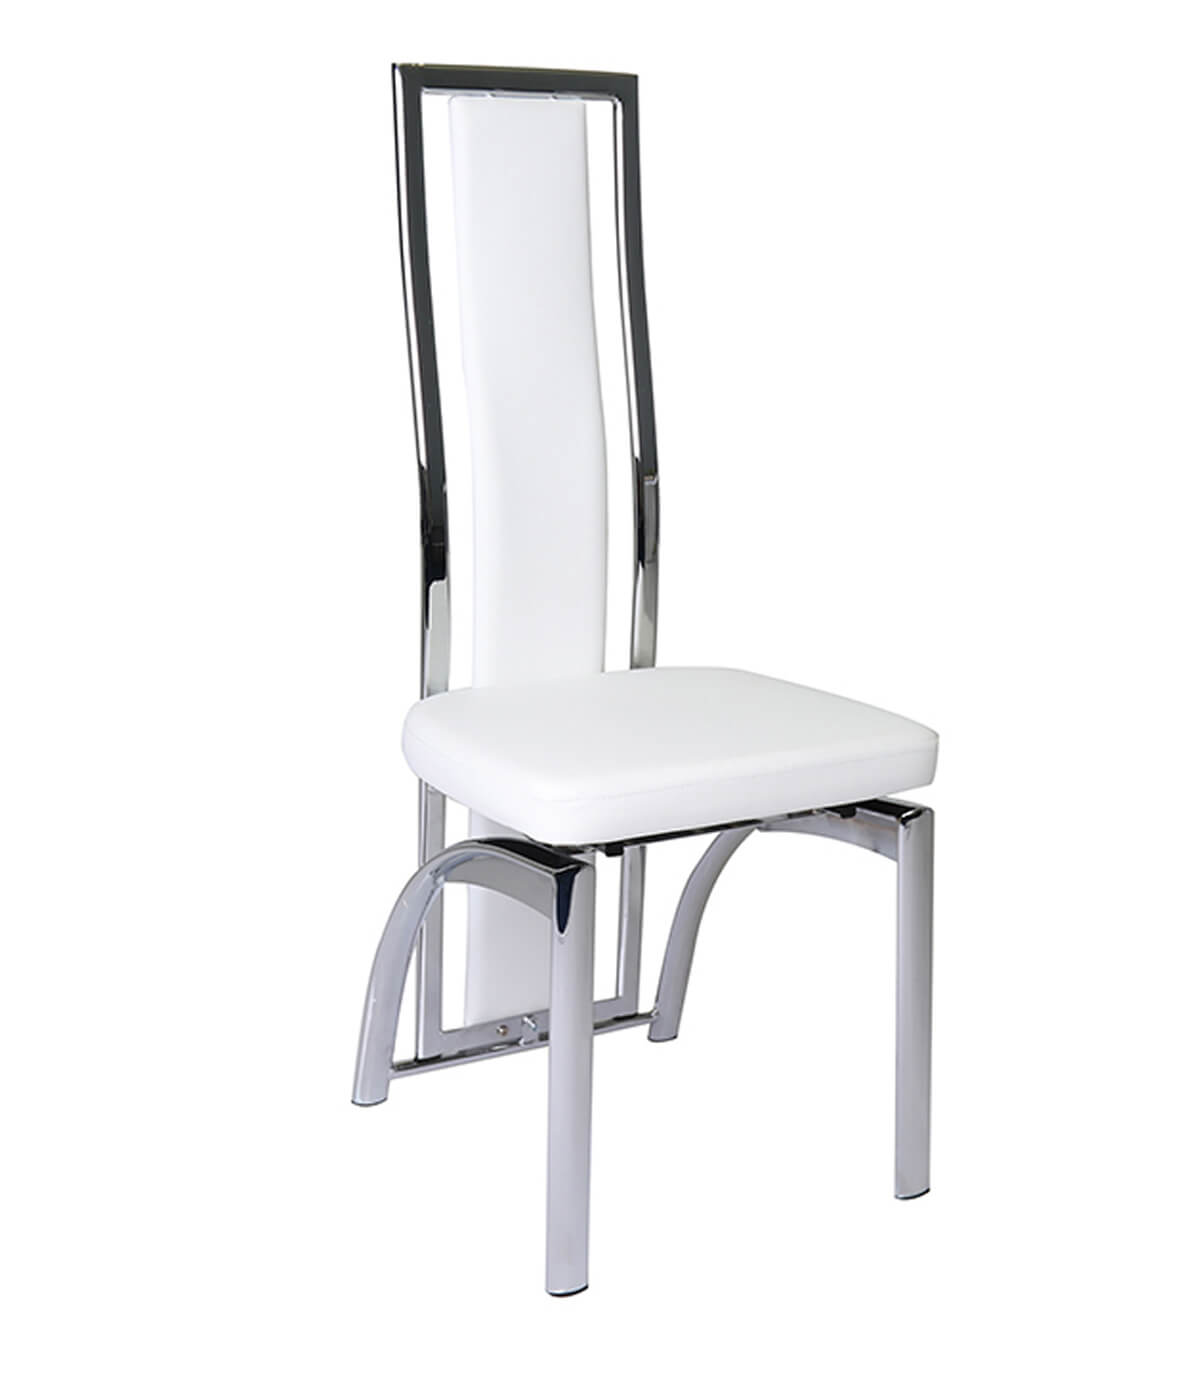 chrome dining chairs uk chair cover hire hartlepool manchester furniture supplies